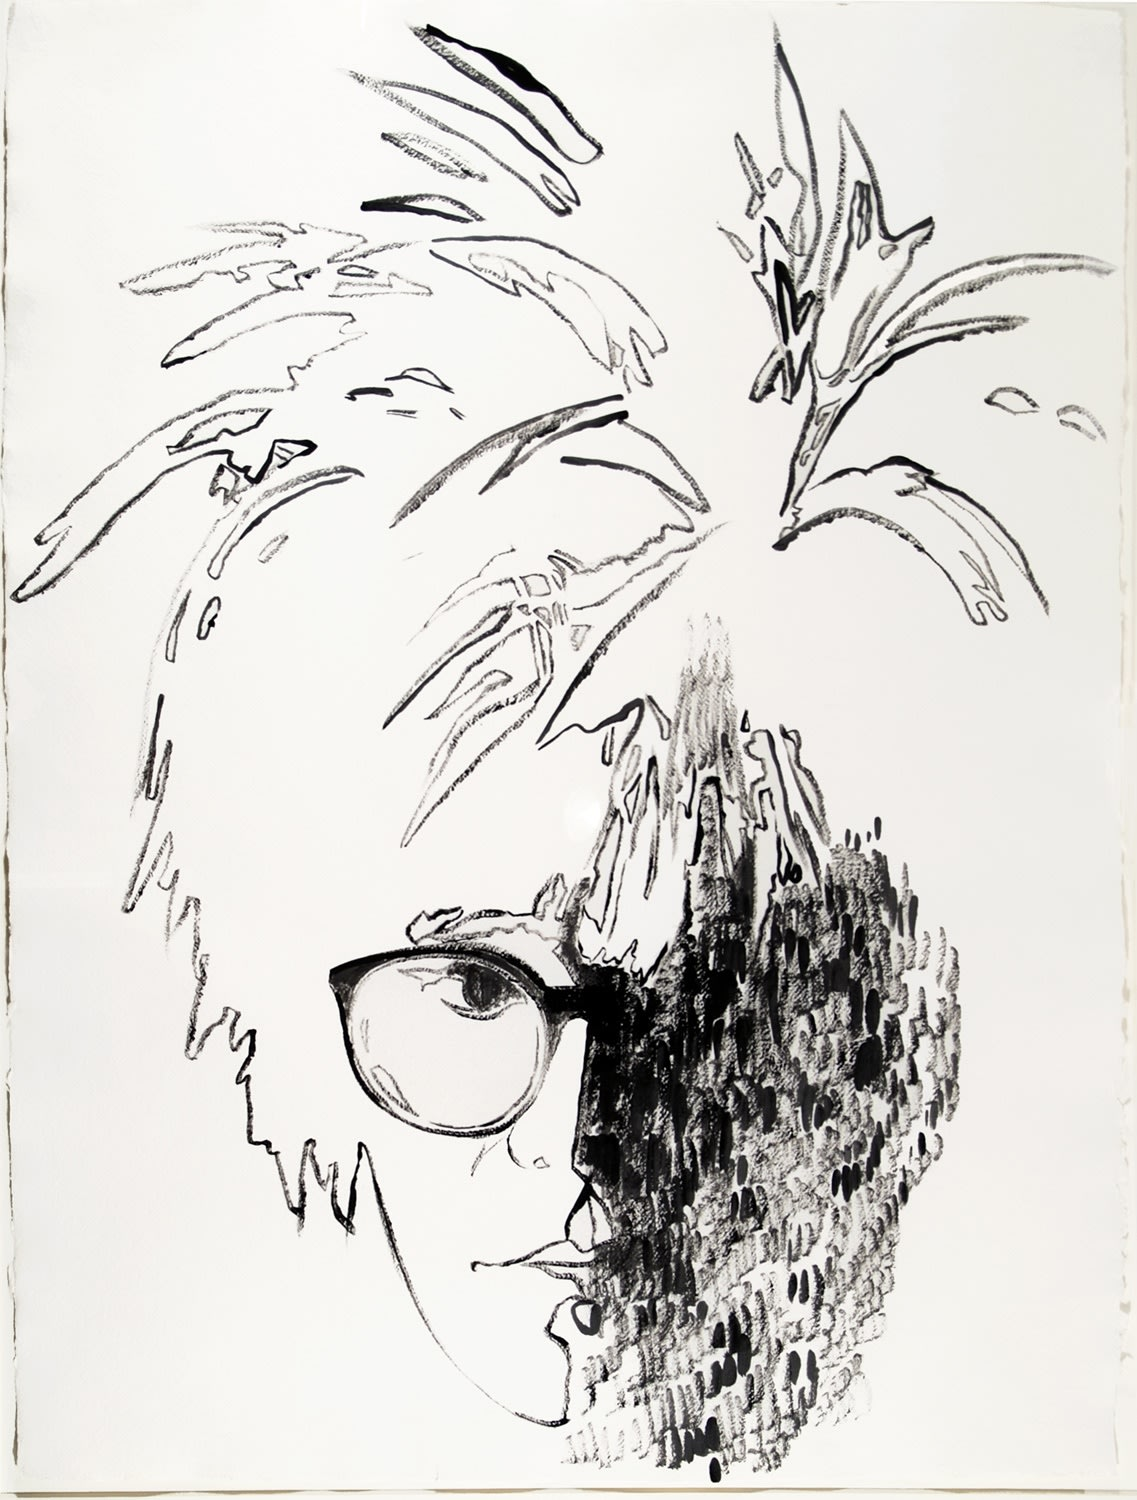 Andy Warhol By Hand New York Academy Of Art